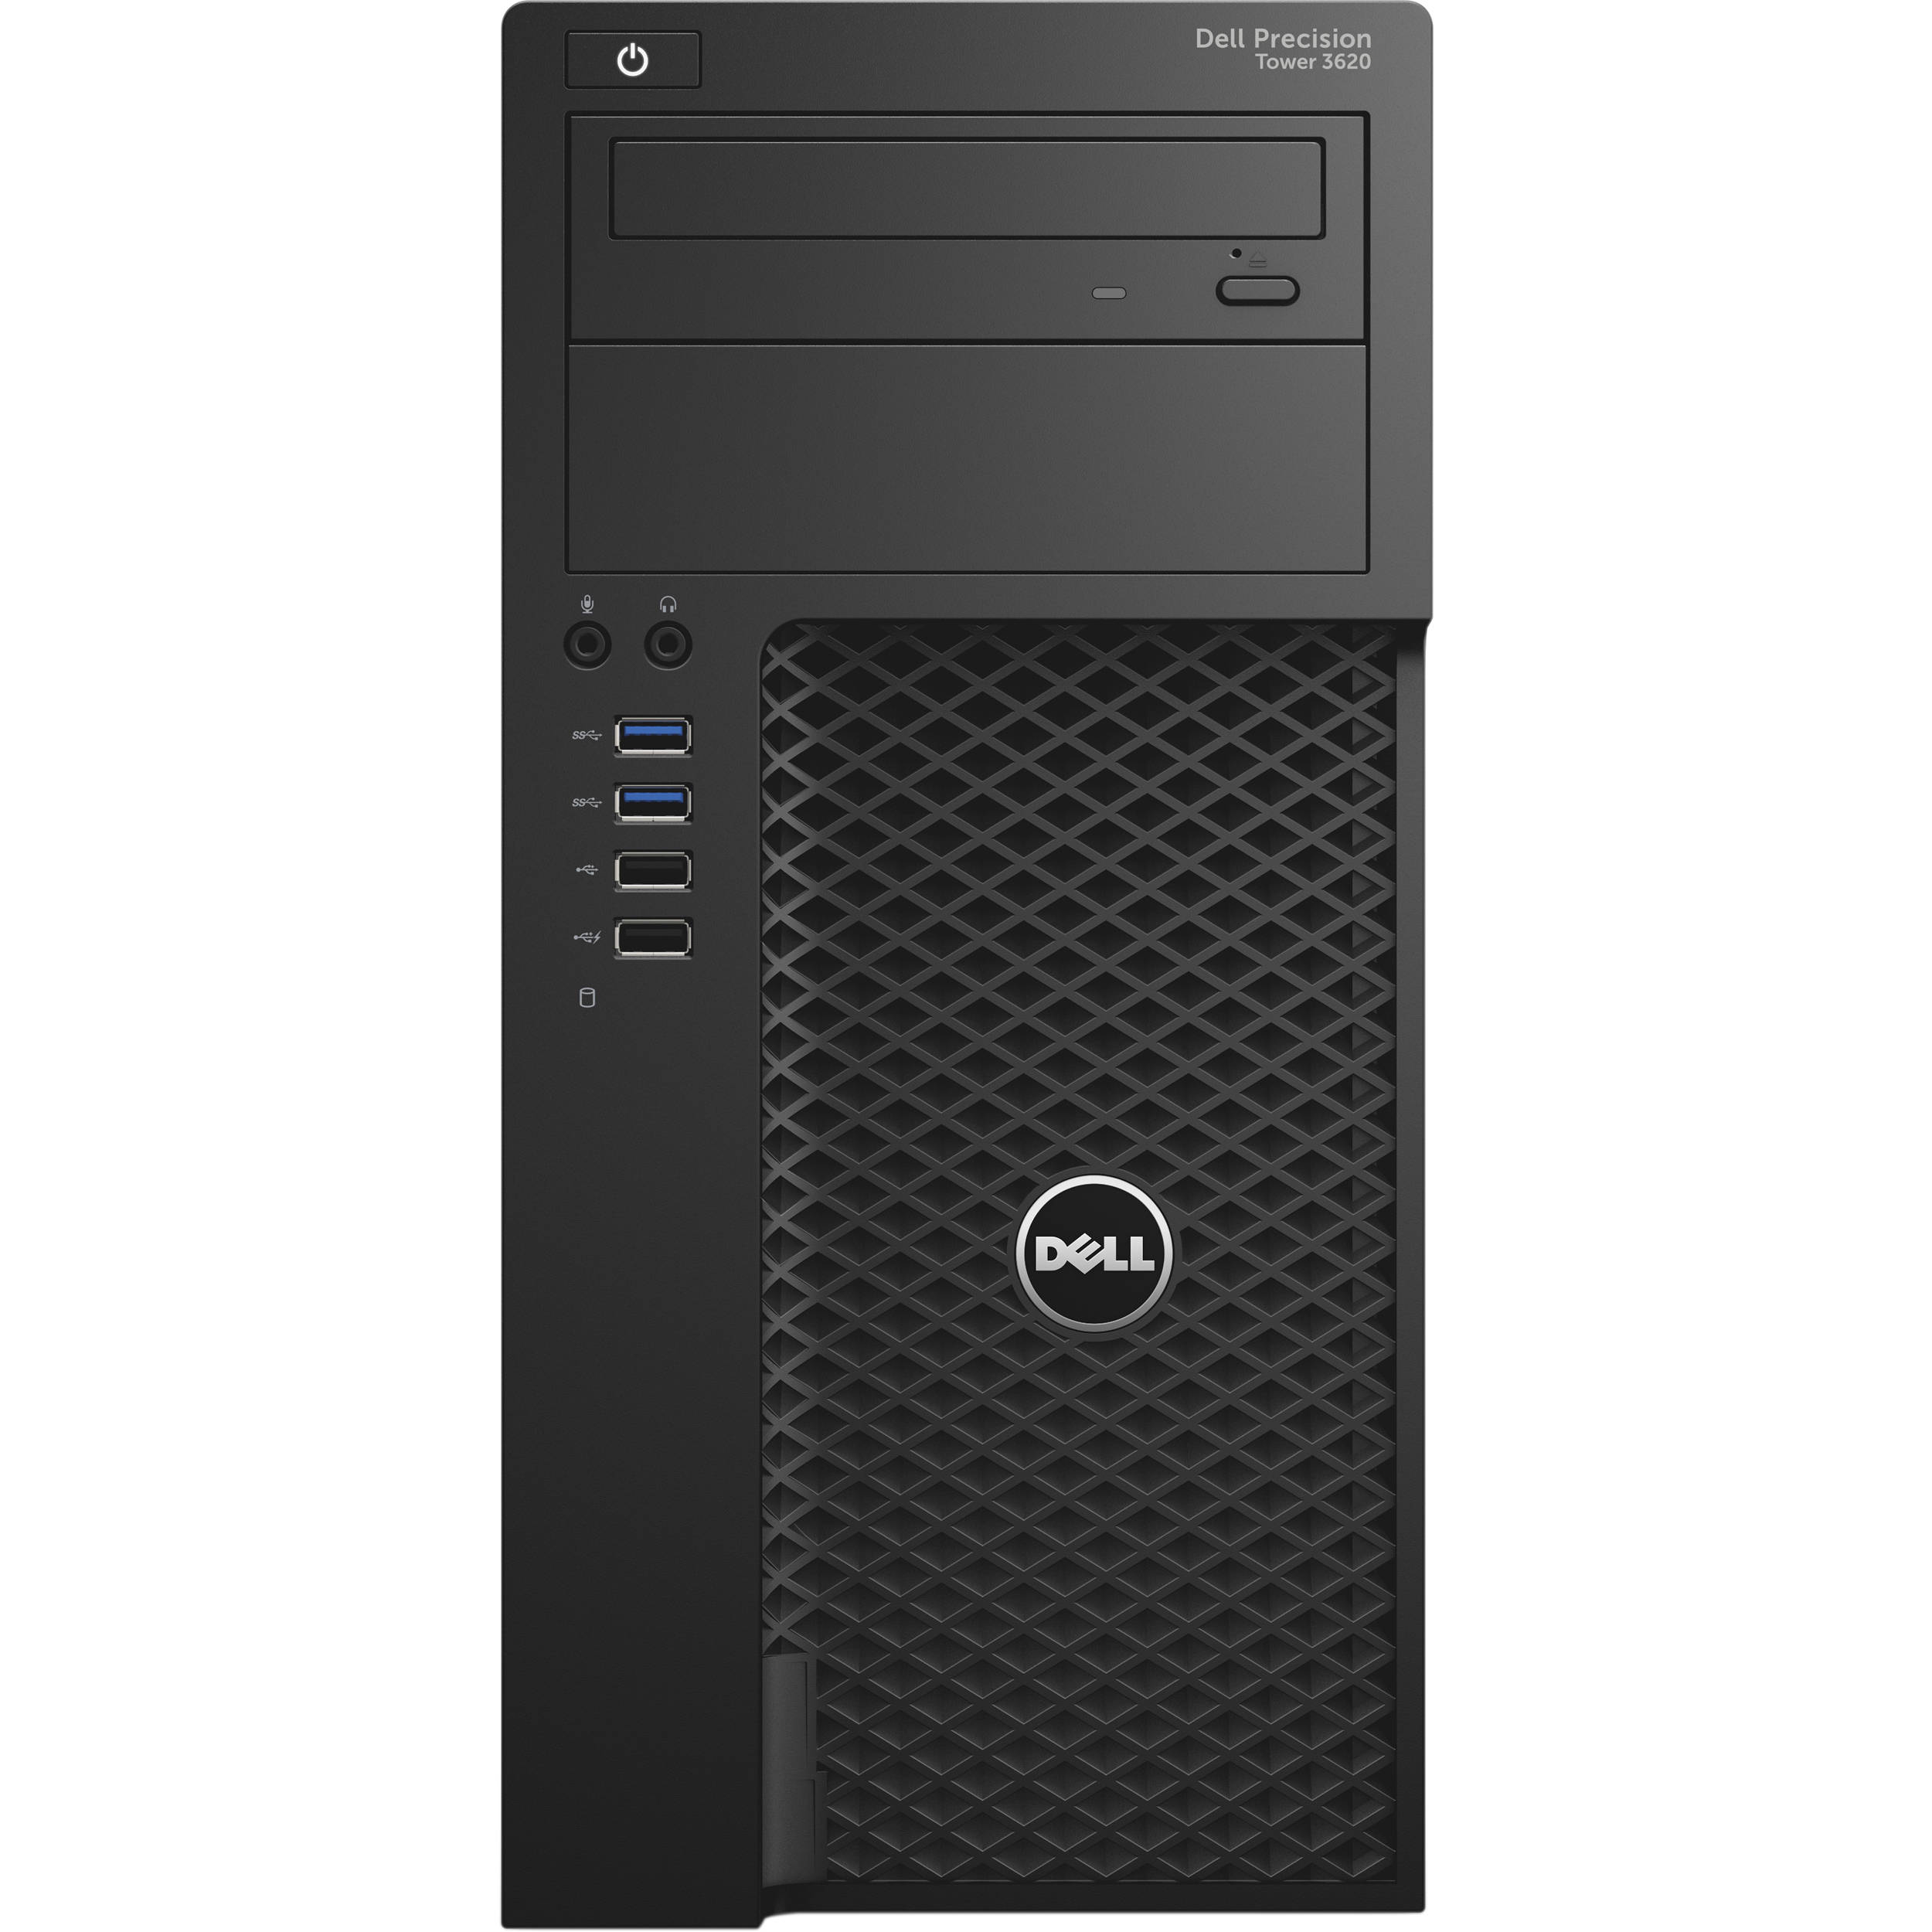 MÁY CHỦ SERVER DELL Precision T3620 Workstation Core™ i5-6500 3.2GHz